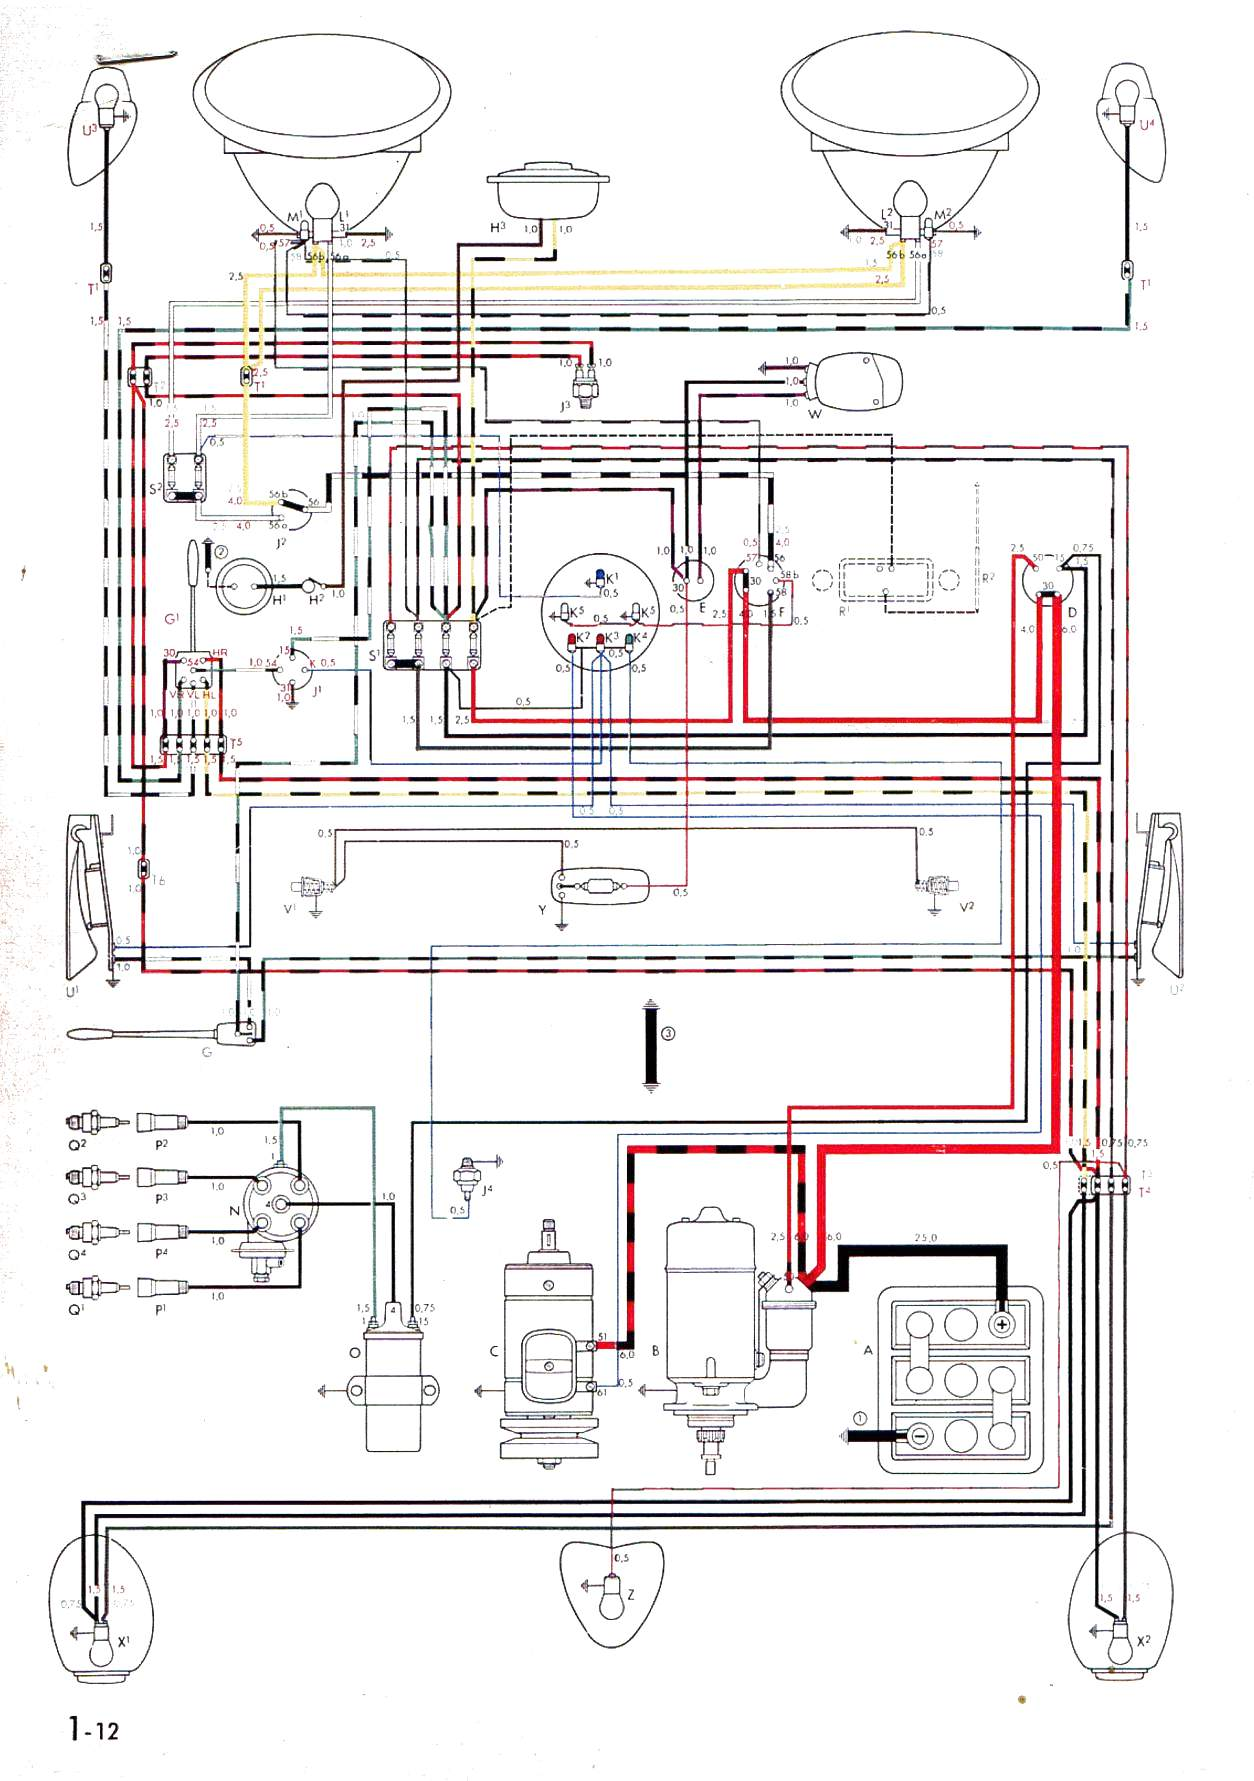 bug 55 57 vw wiring diagrams 1972 beetle wiring diagram at mifinder.co